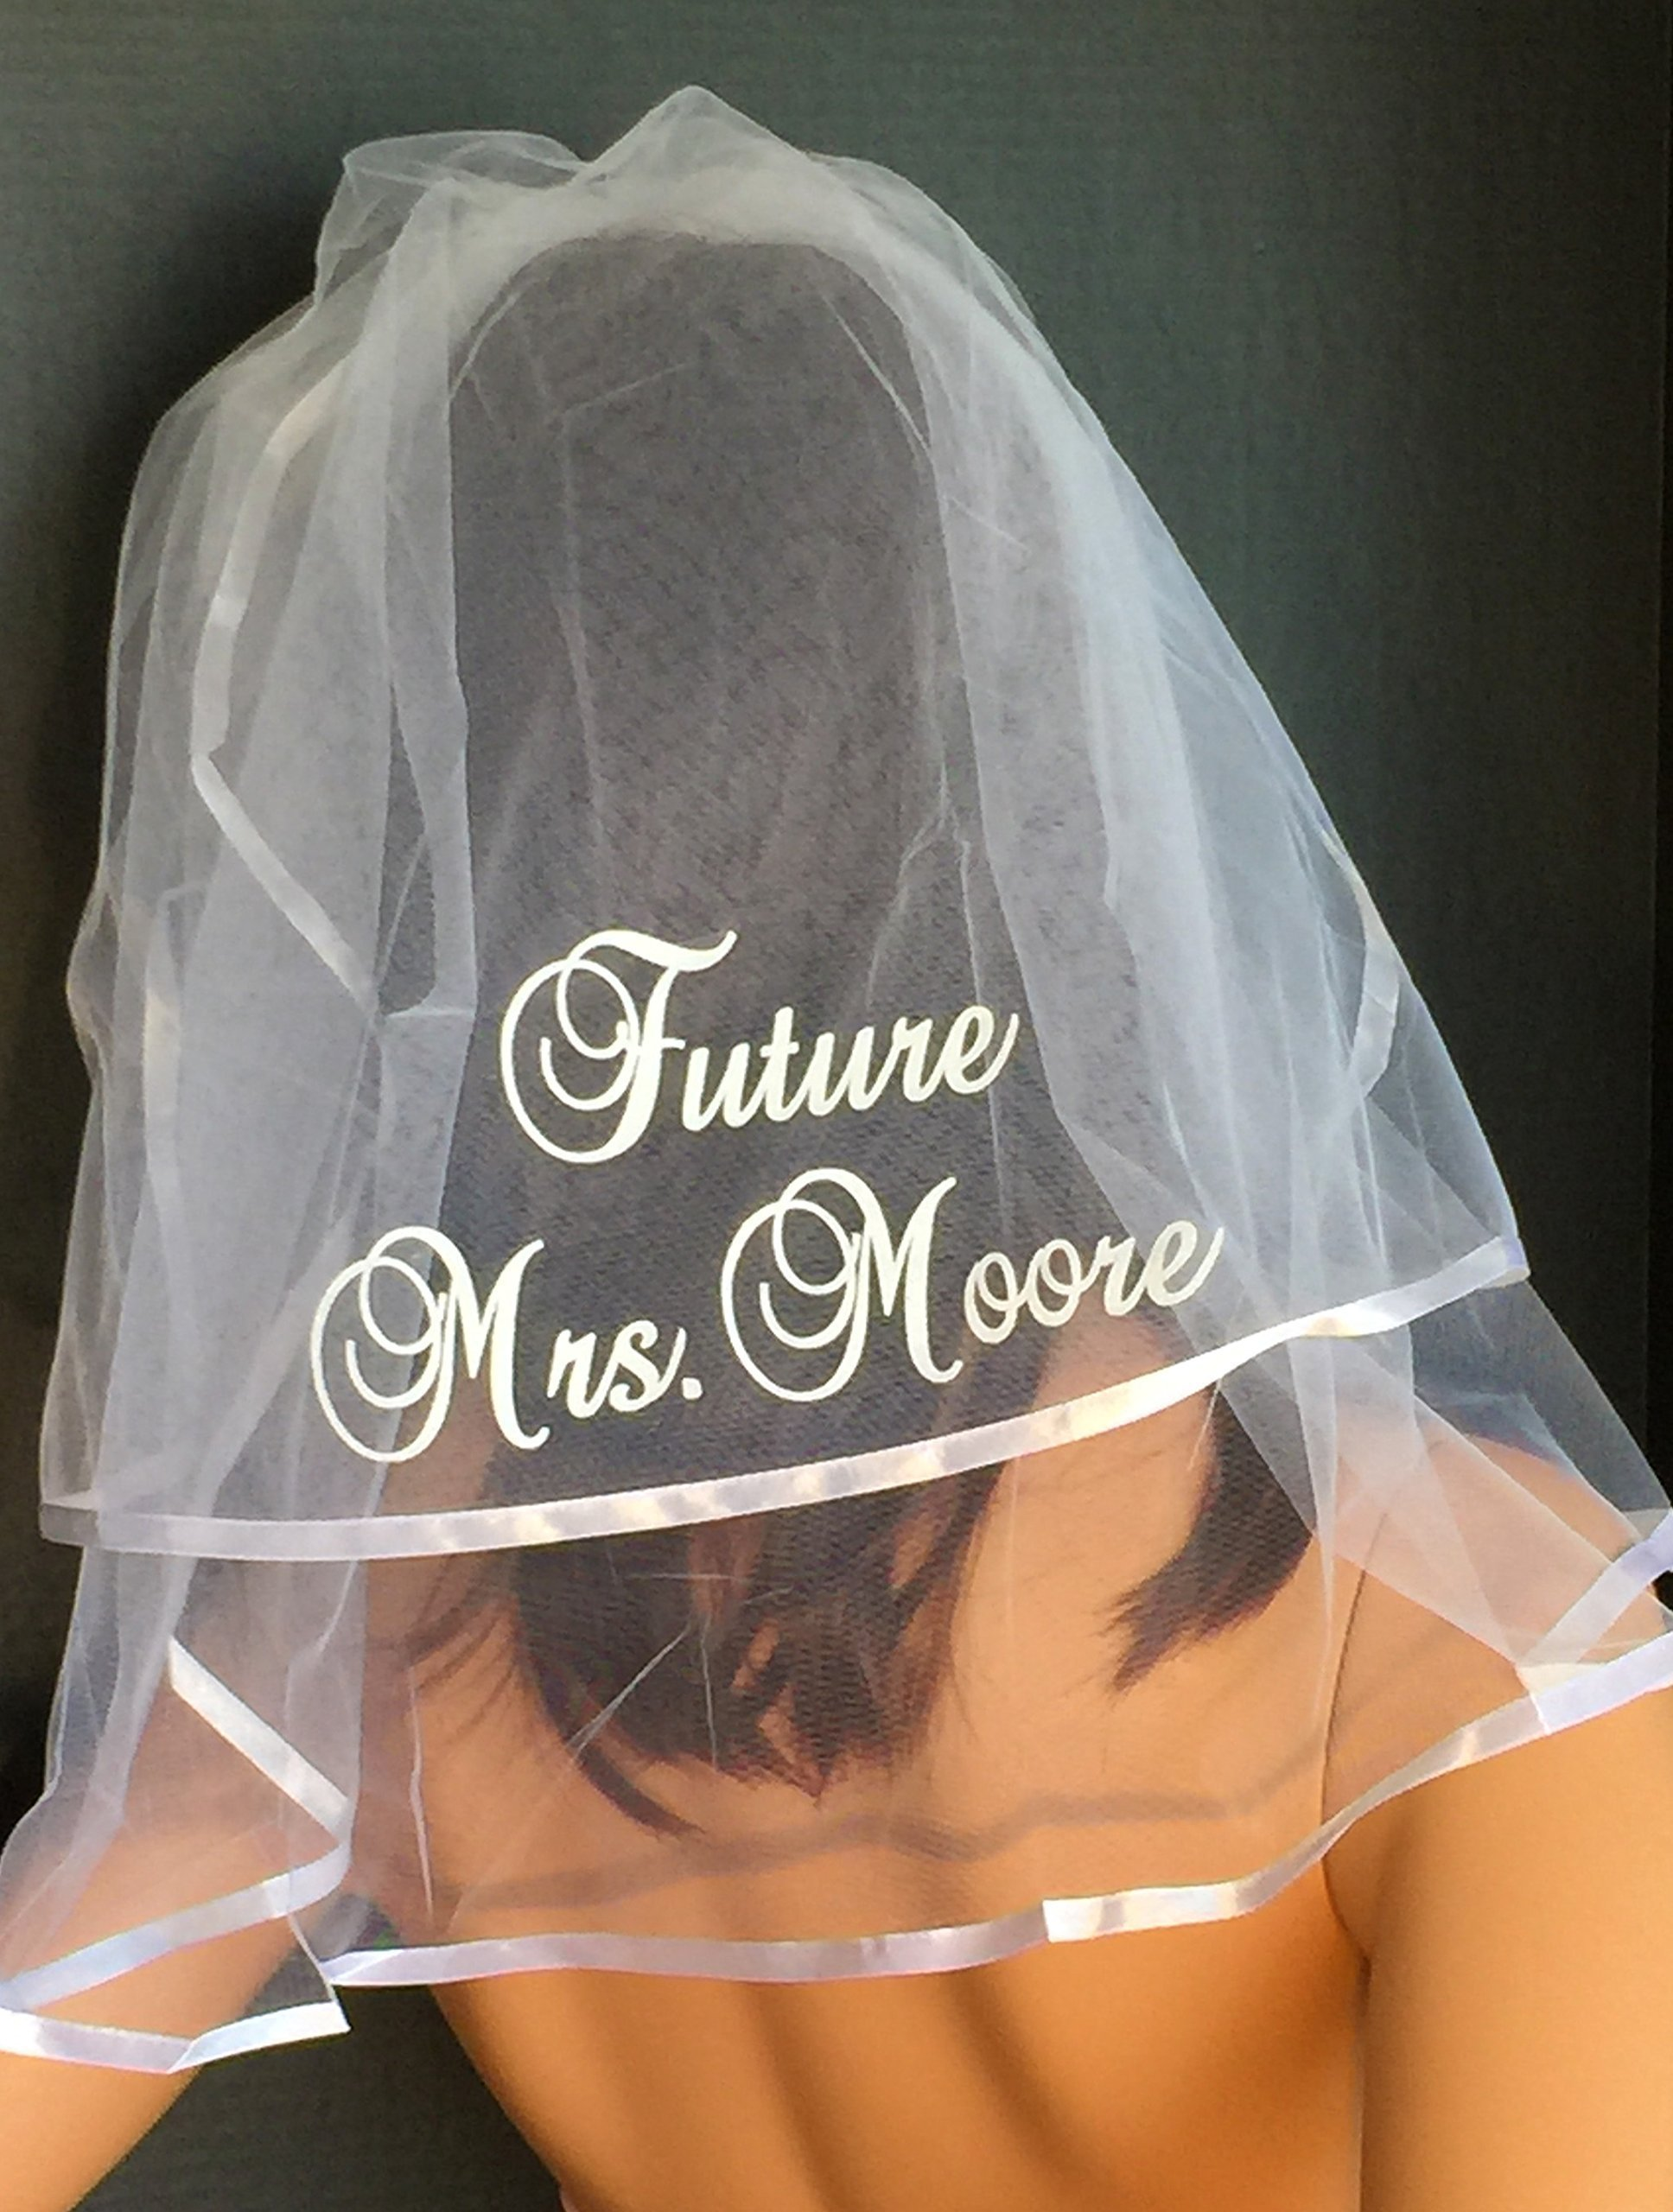 Wedding Veil - Personalized in Sparkling GLITTER lettering which comes in an array of colors. Bridal Shower, Hen Party,